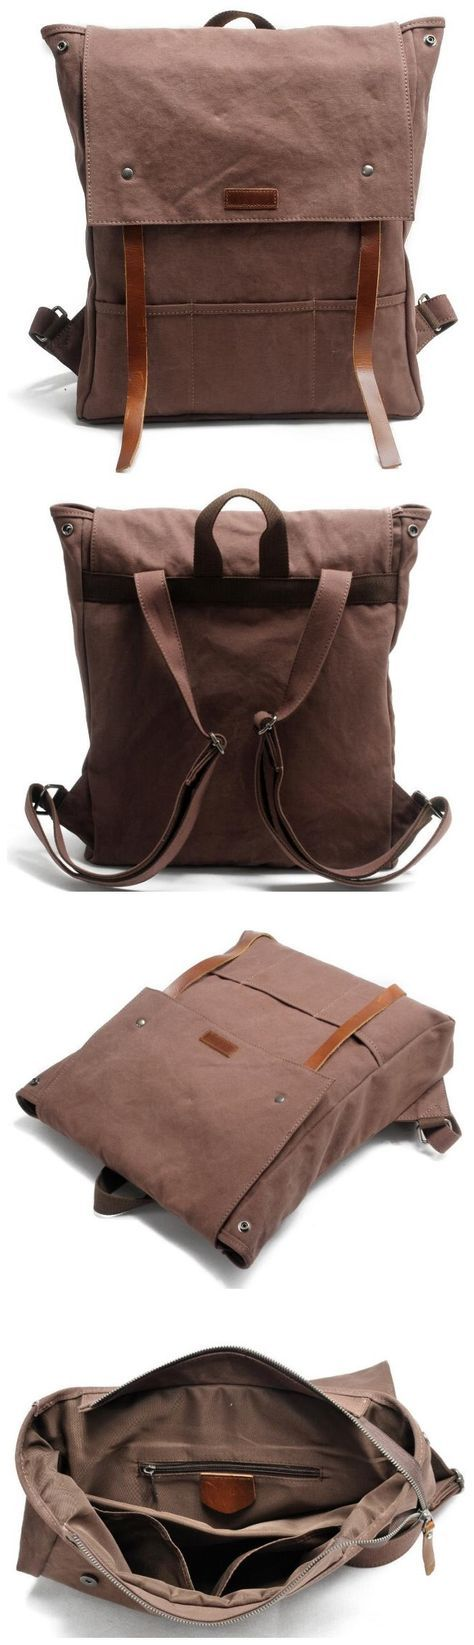 Canvas Leather Backpack School Backpack • Fabric Lining • Inside zipper pocket • It can hold a 14'' laptop, iPad, A4 document files, magazines, etc. ********************** Specifications: Length: 35cm